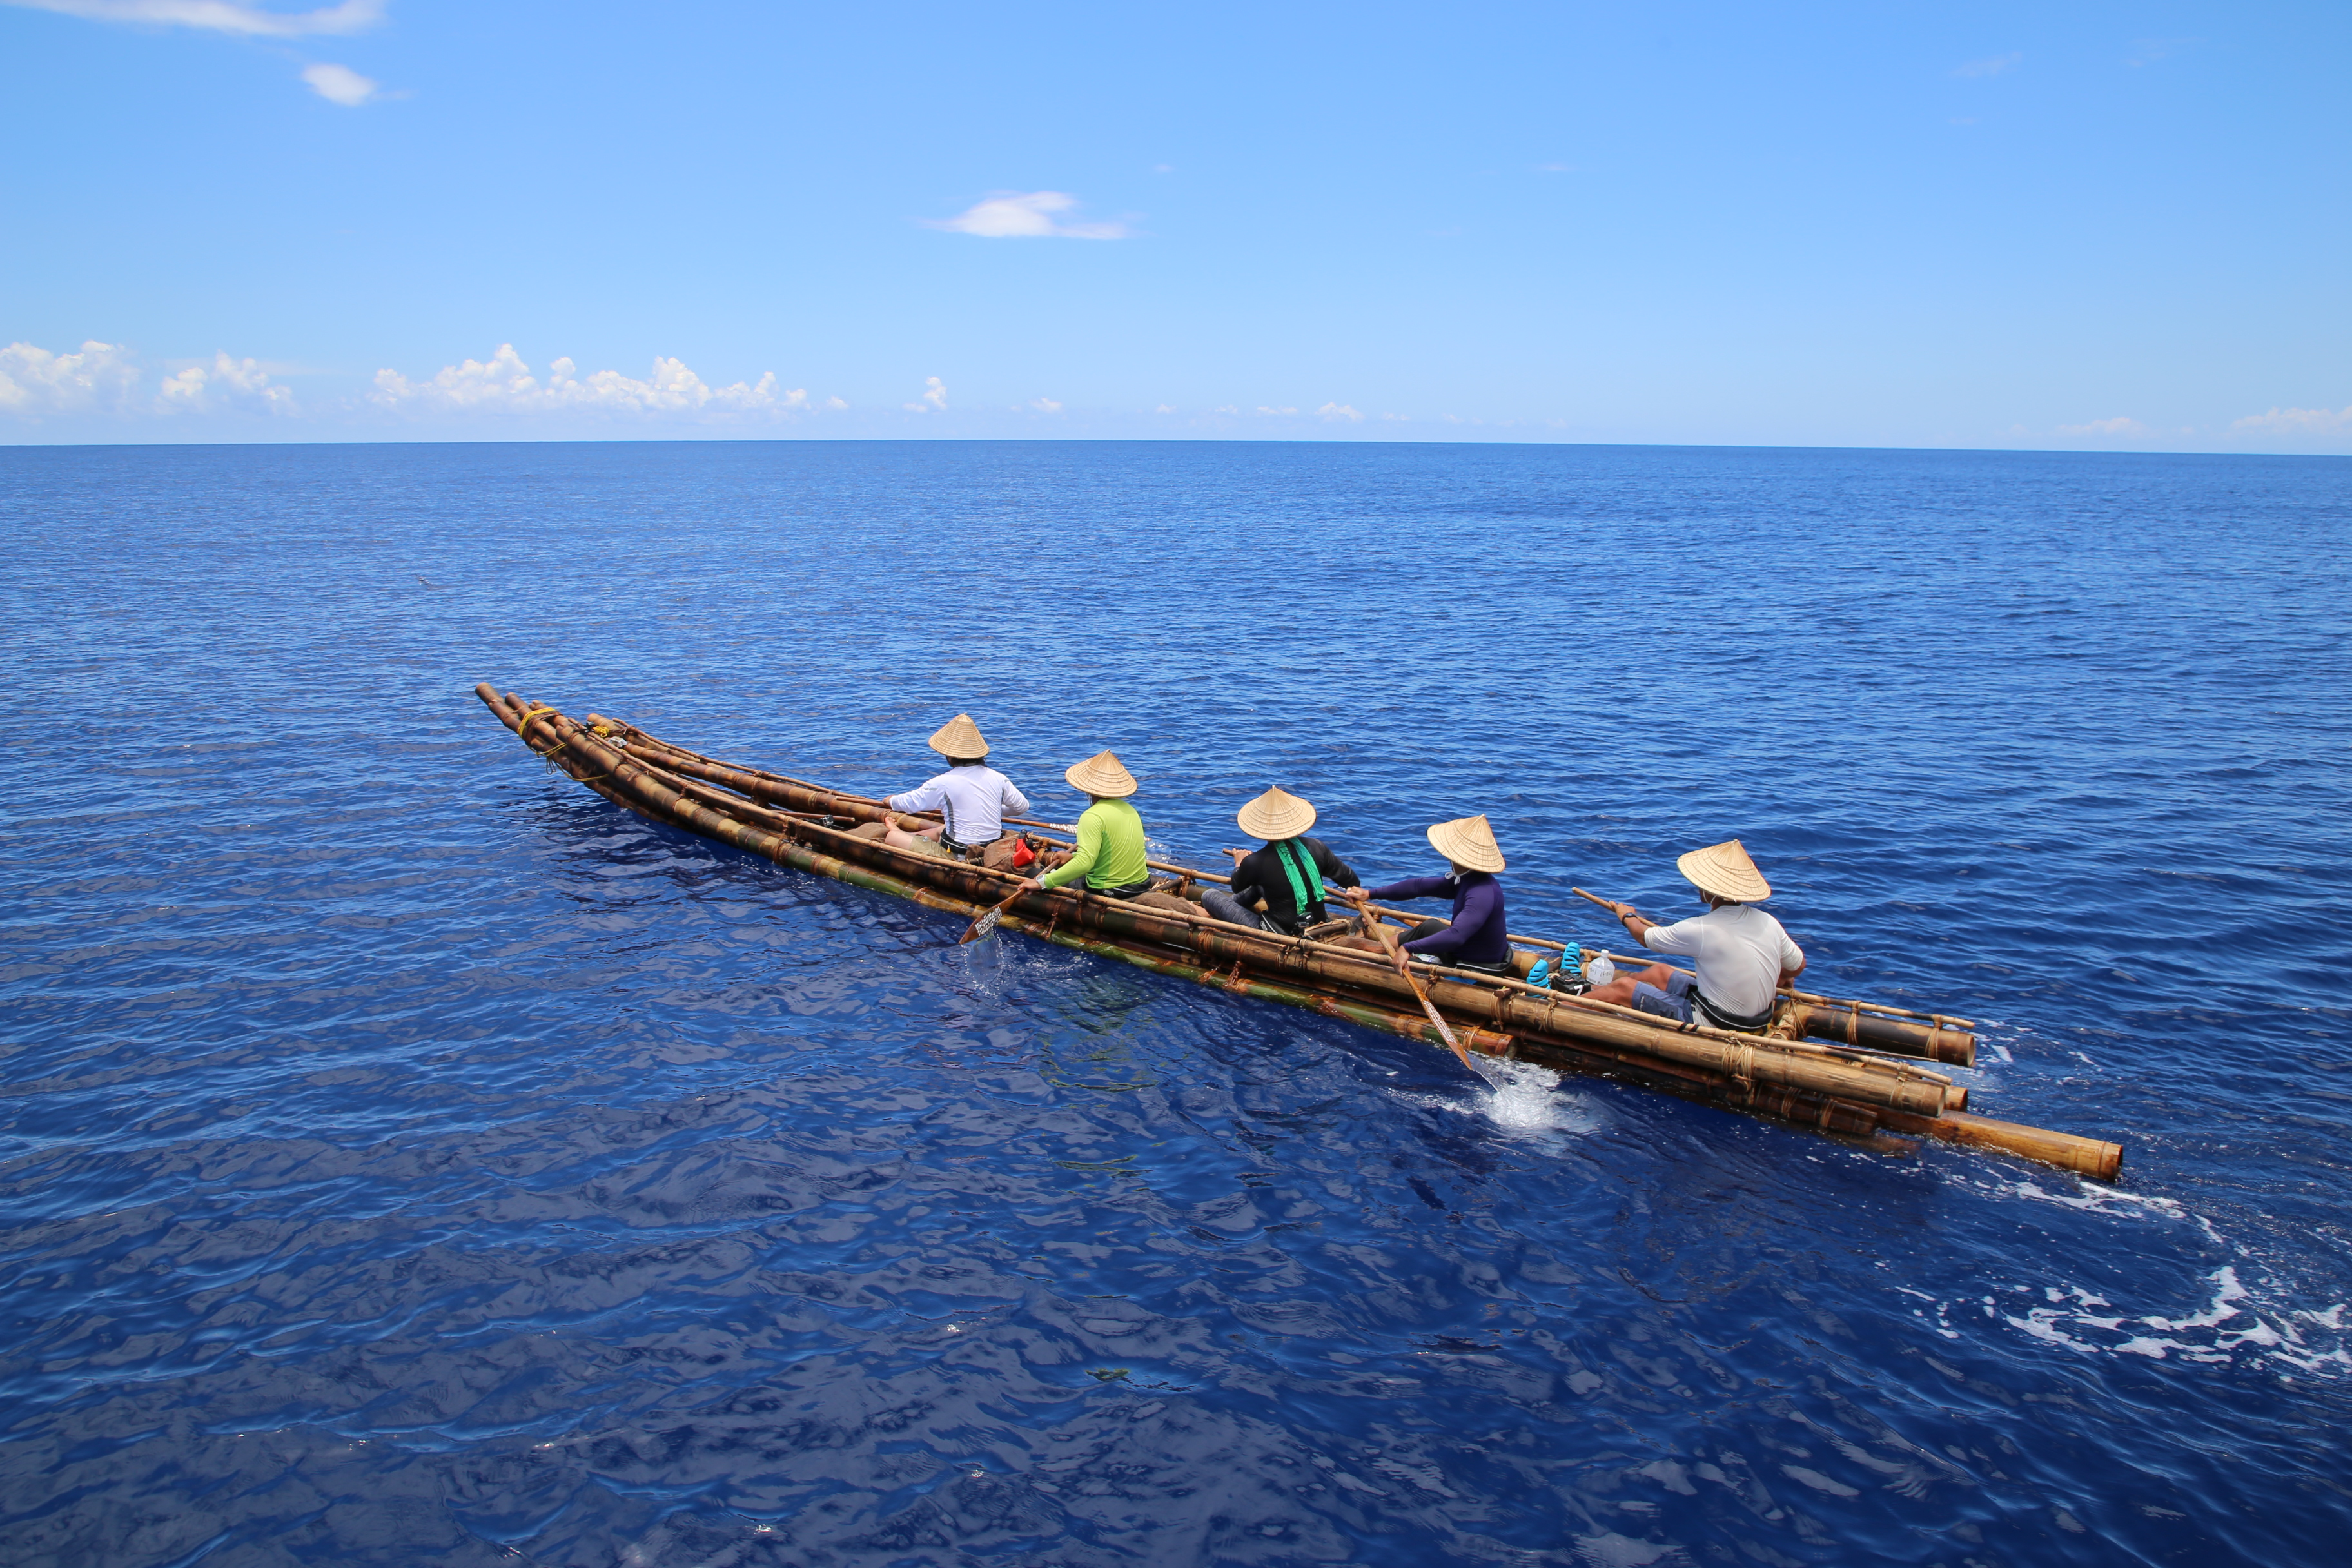 A simple wooden craft on a blue ocean